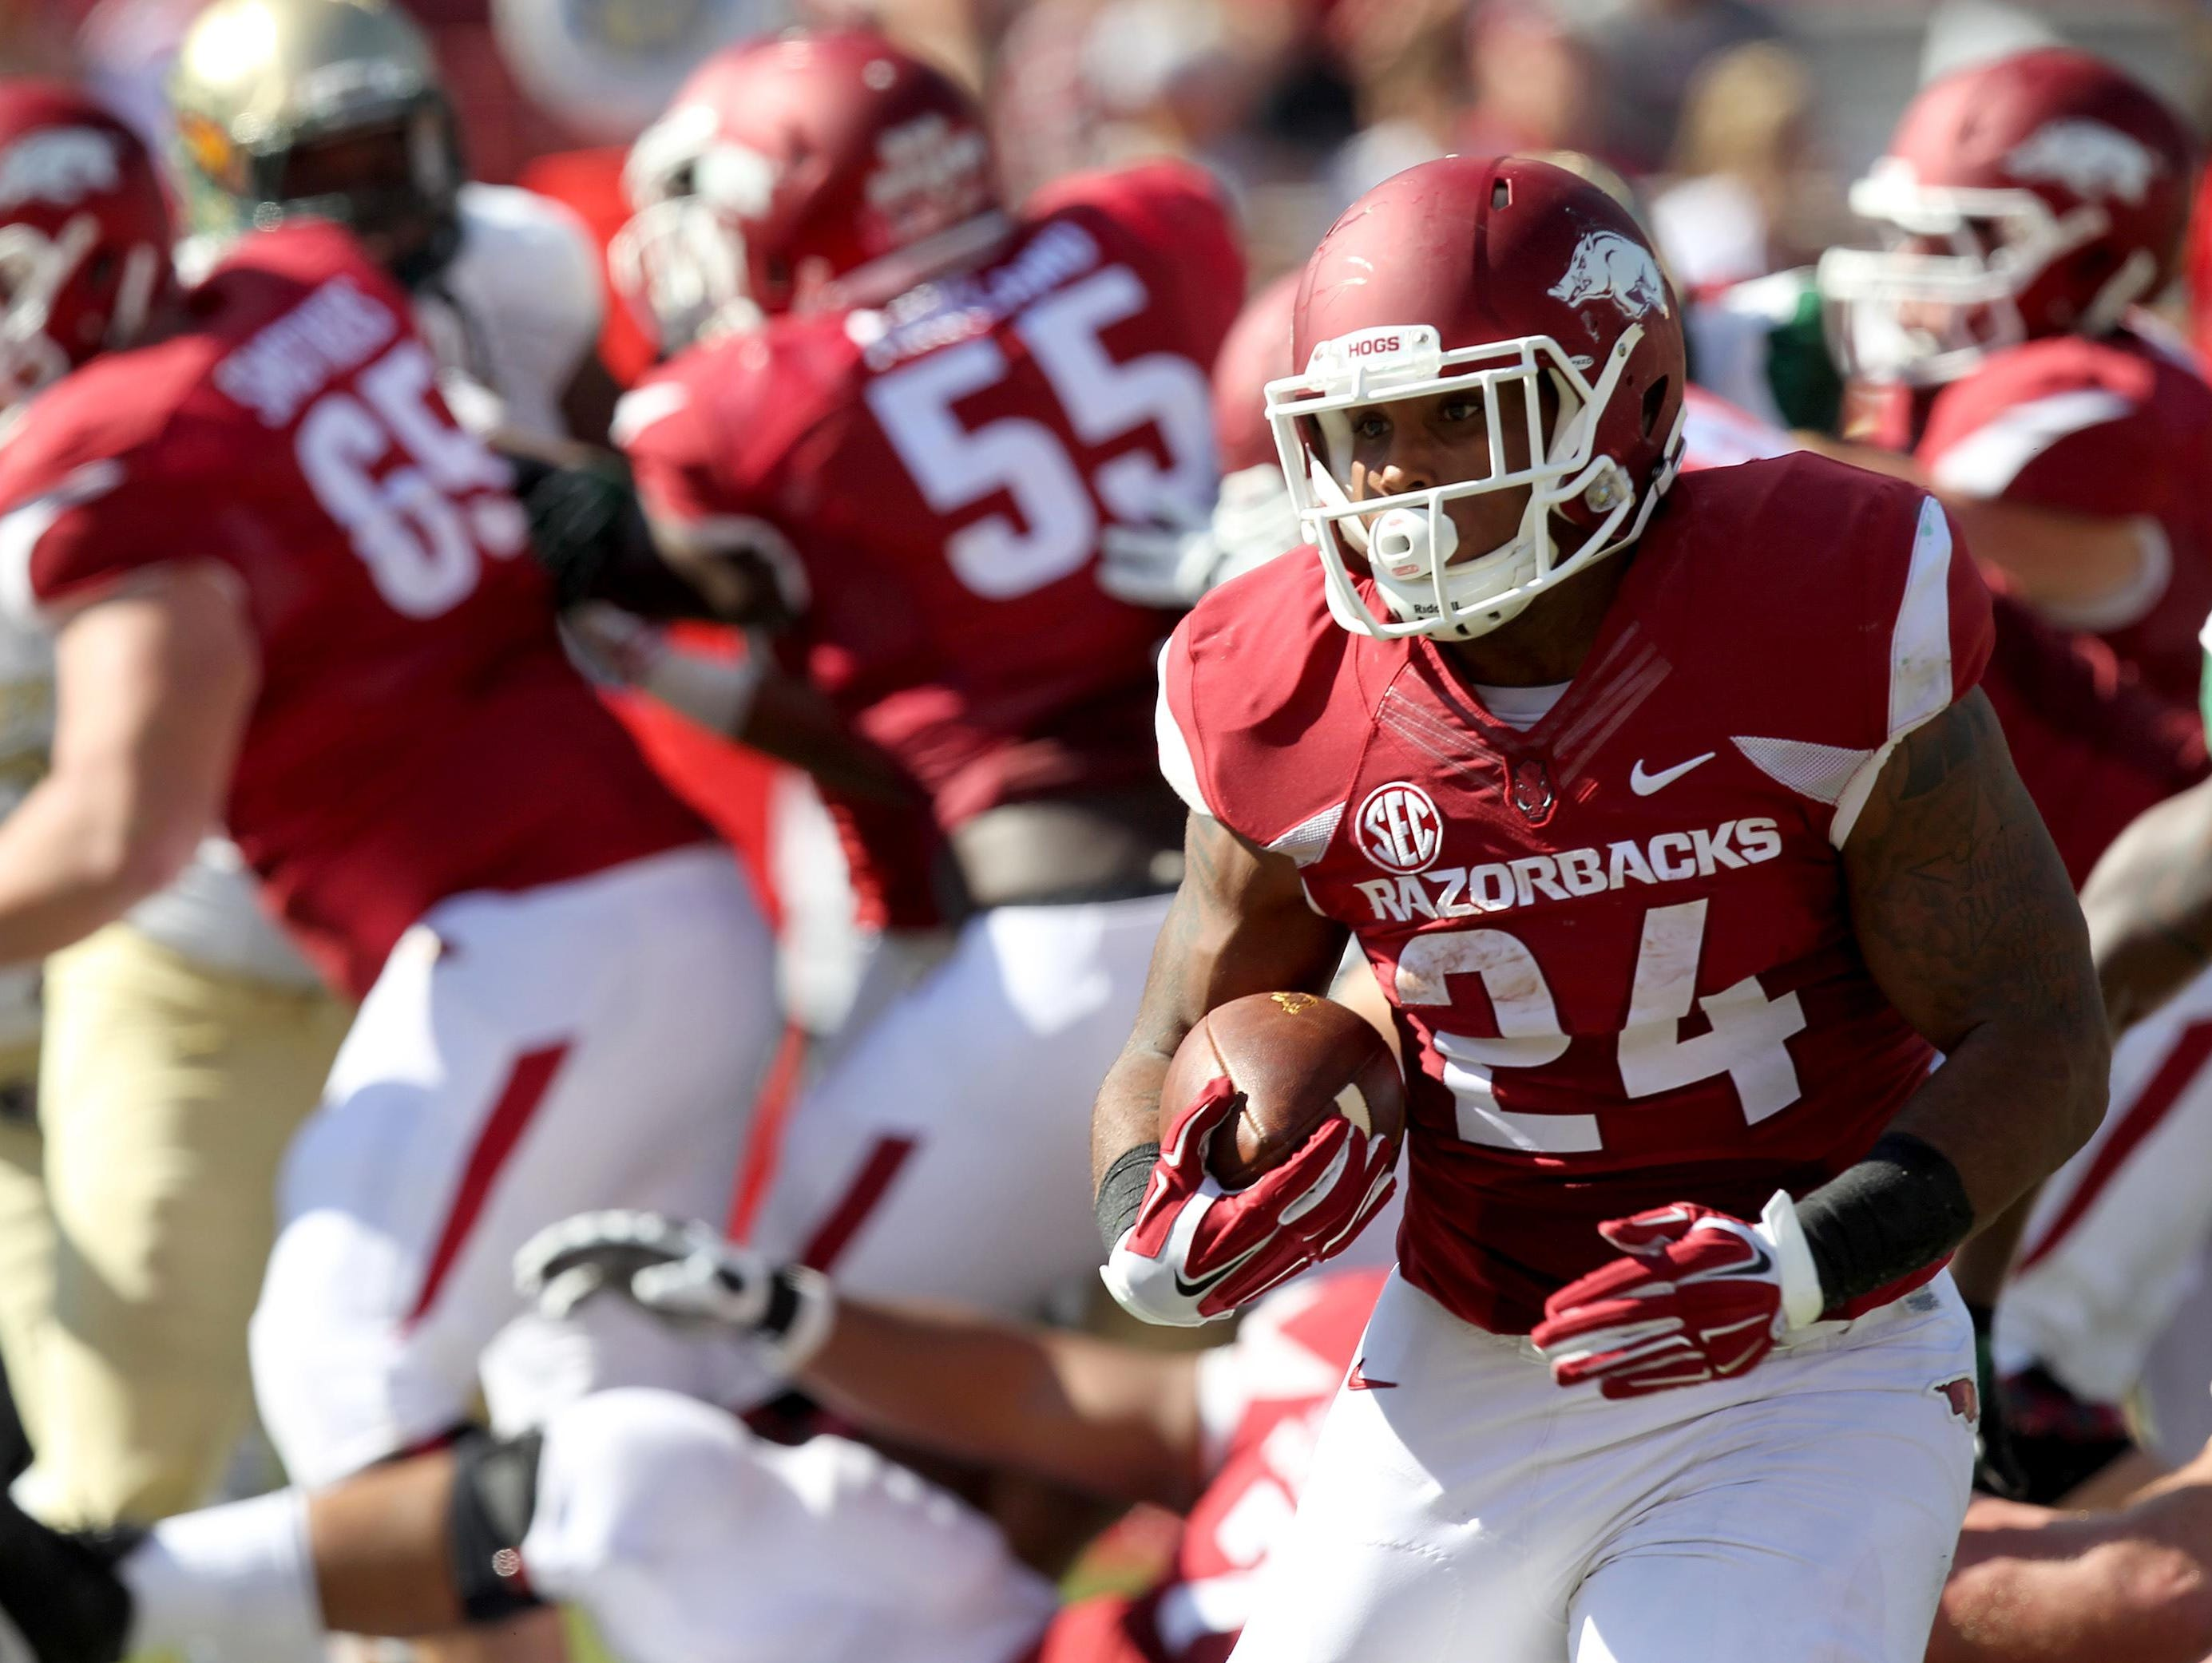 Arkansas Razorbacks running back Kody Walker (24) rushes against the UAB Blazers at Donald W. Reynolds Stadium in Fayetteville last season. Walker was granted a sixth year of eligibility by the NCAA on Wednesday.